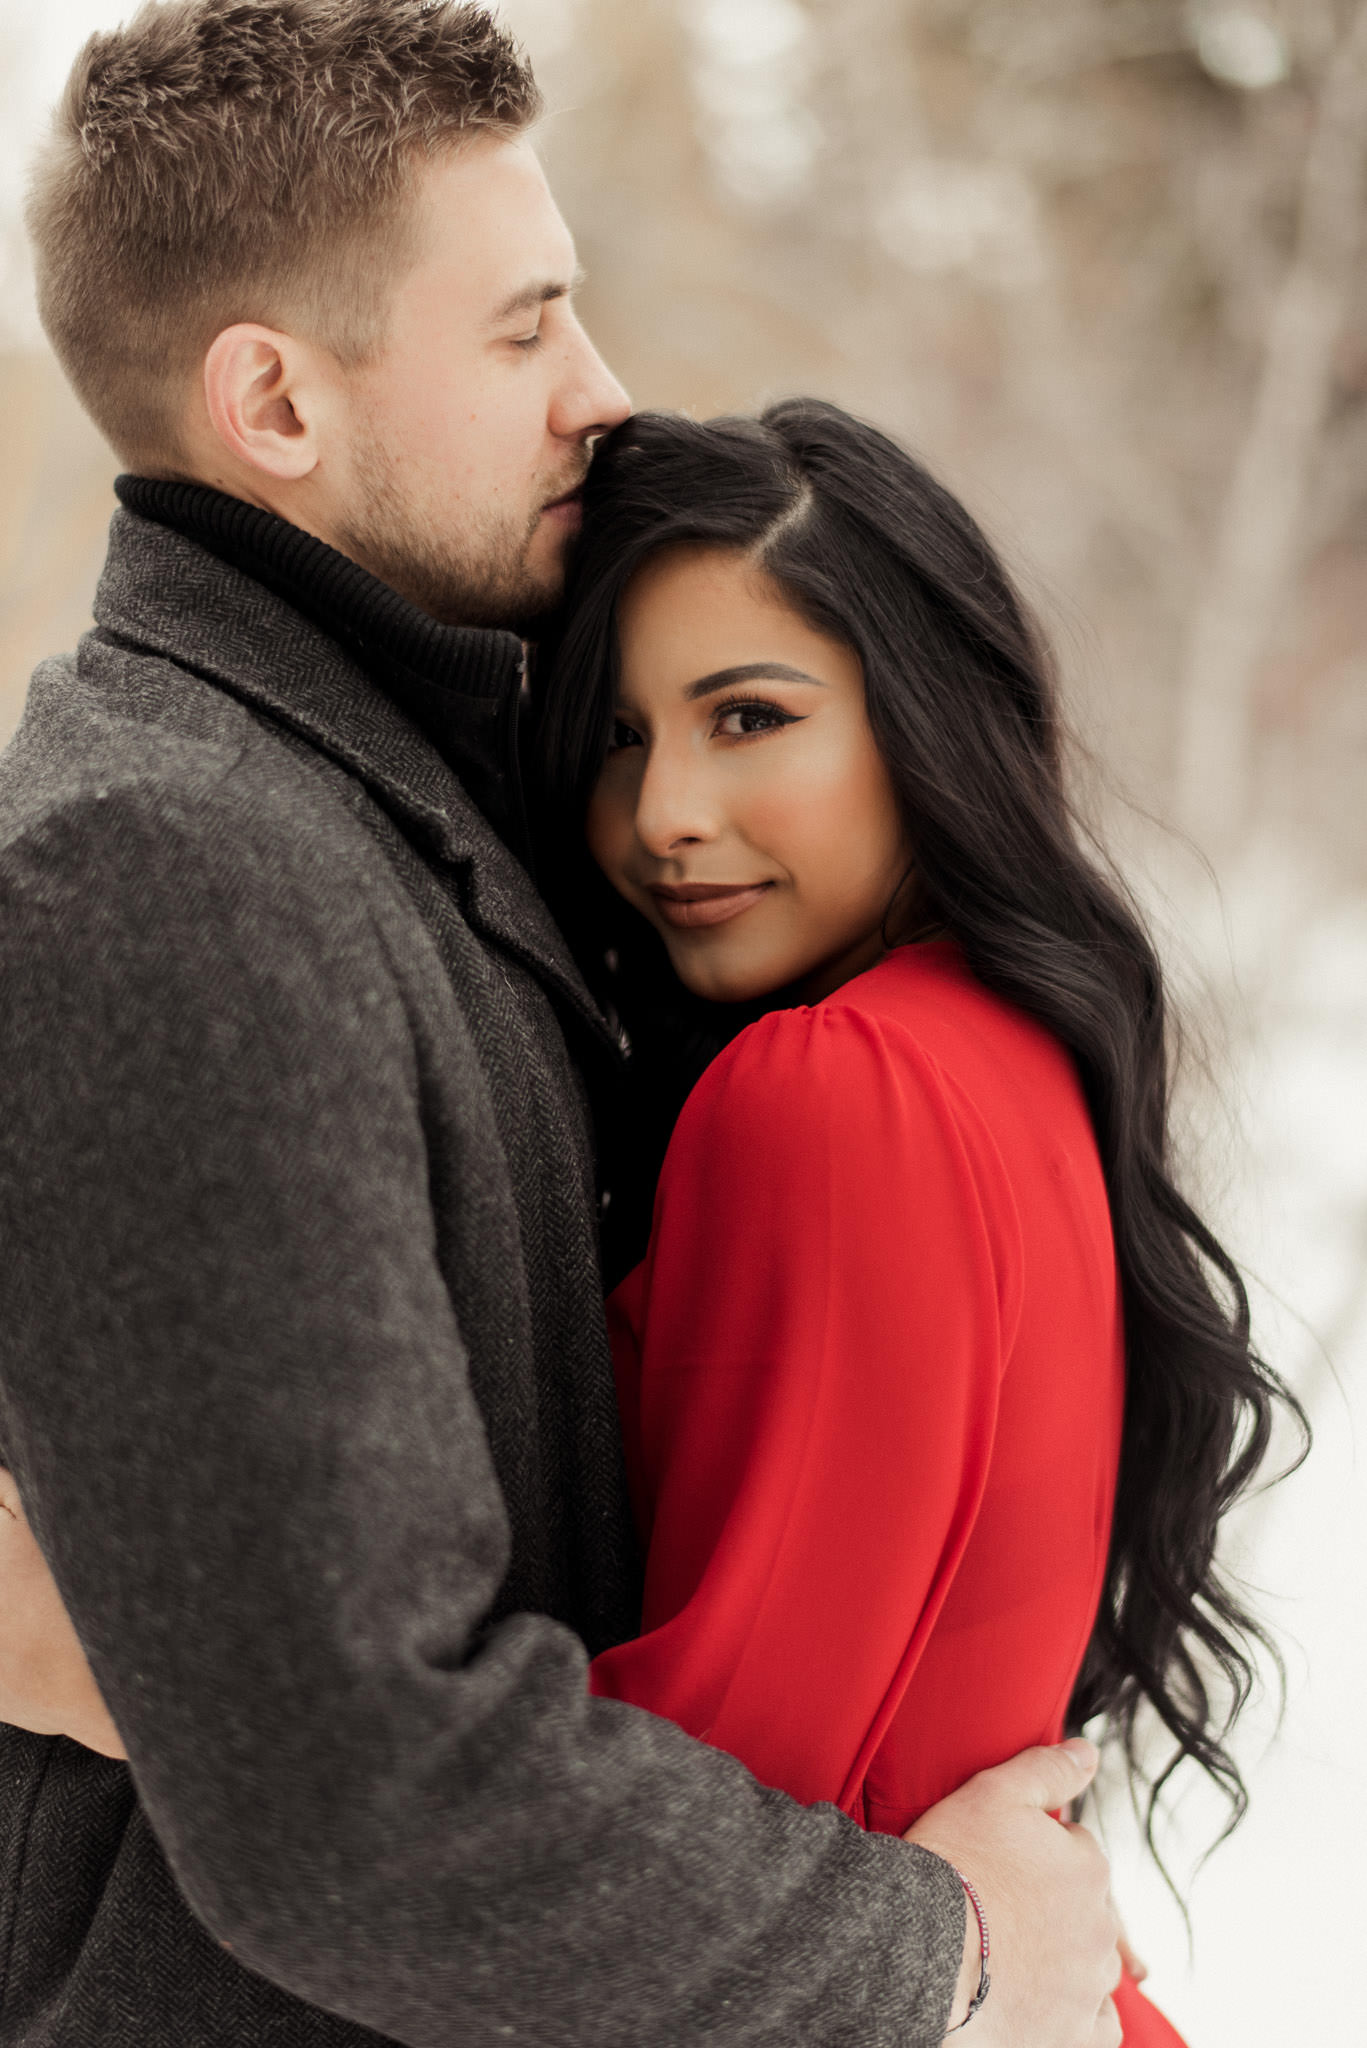 colorado-adventure-winter-snow-couples-engagement-photographer-red-dress